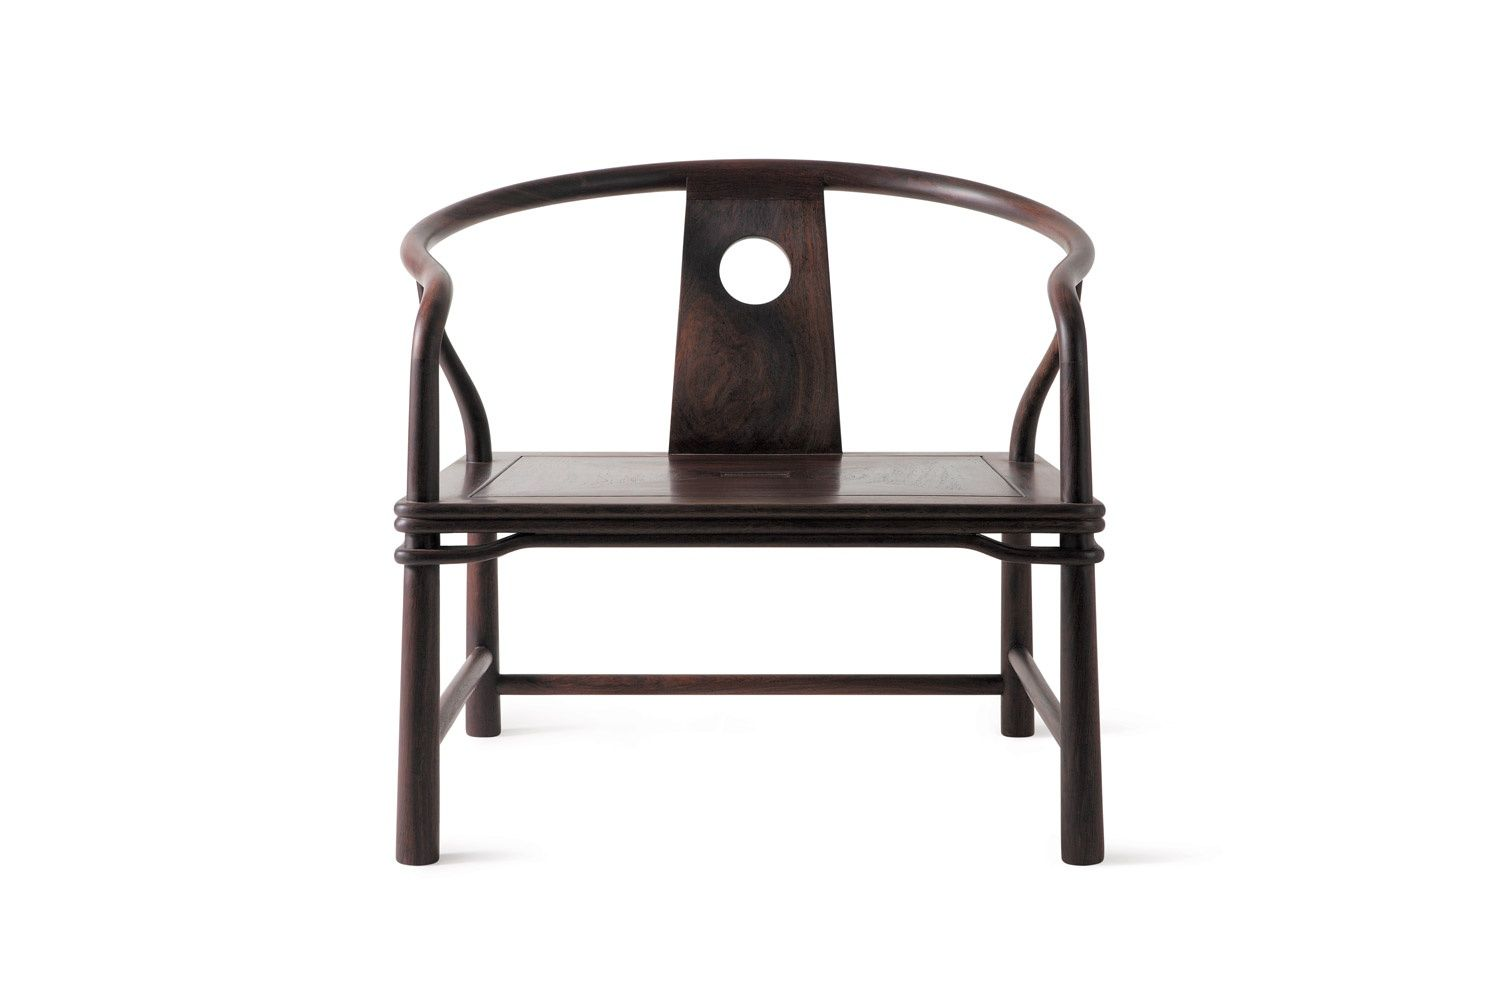 Hong Wei: abstract furniture forms derived from the ...